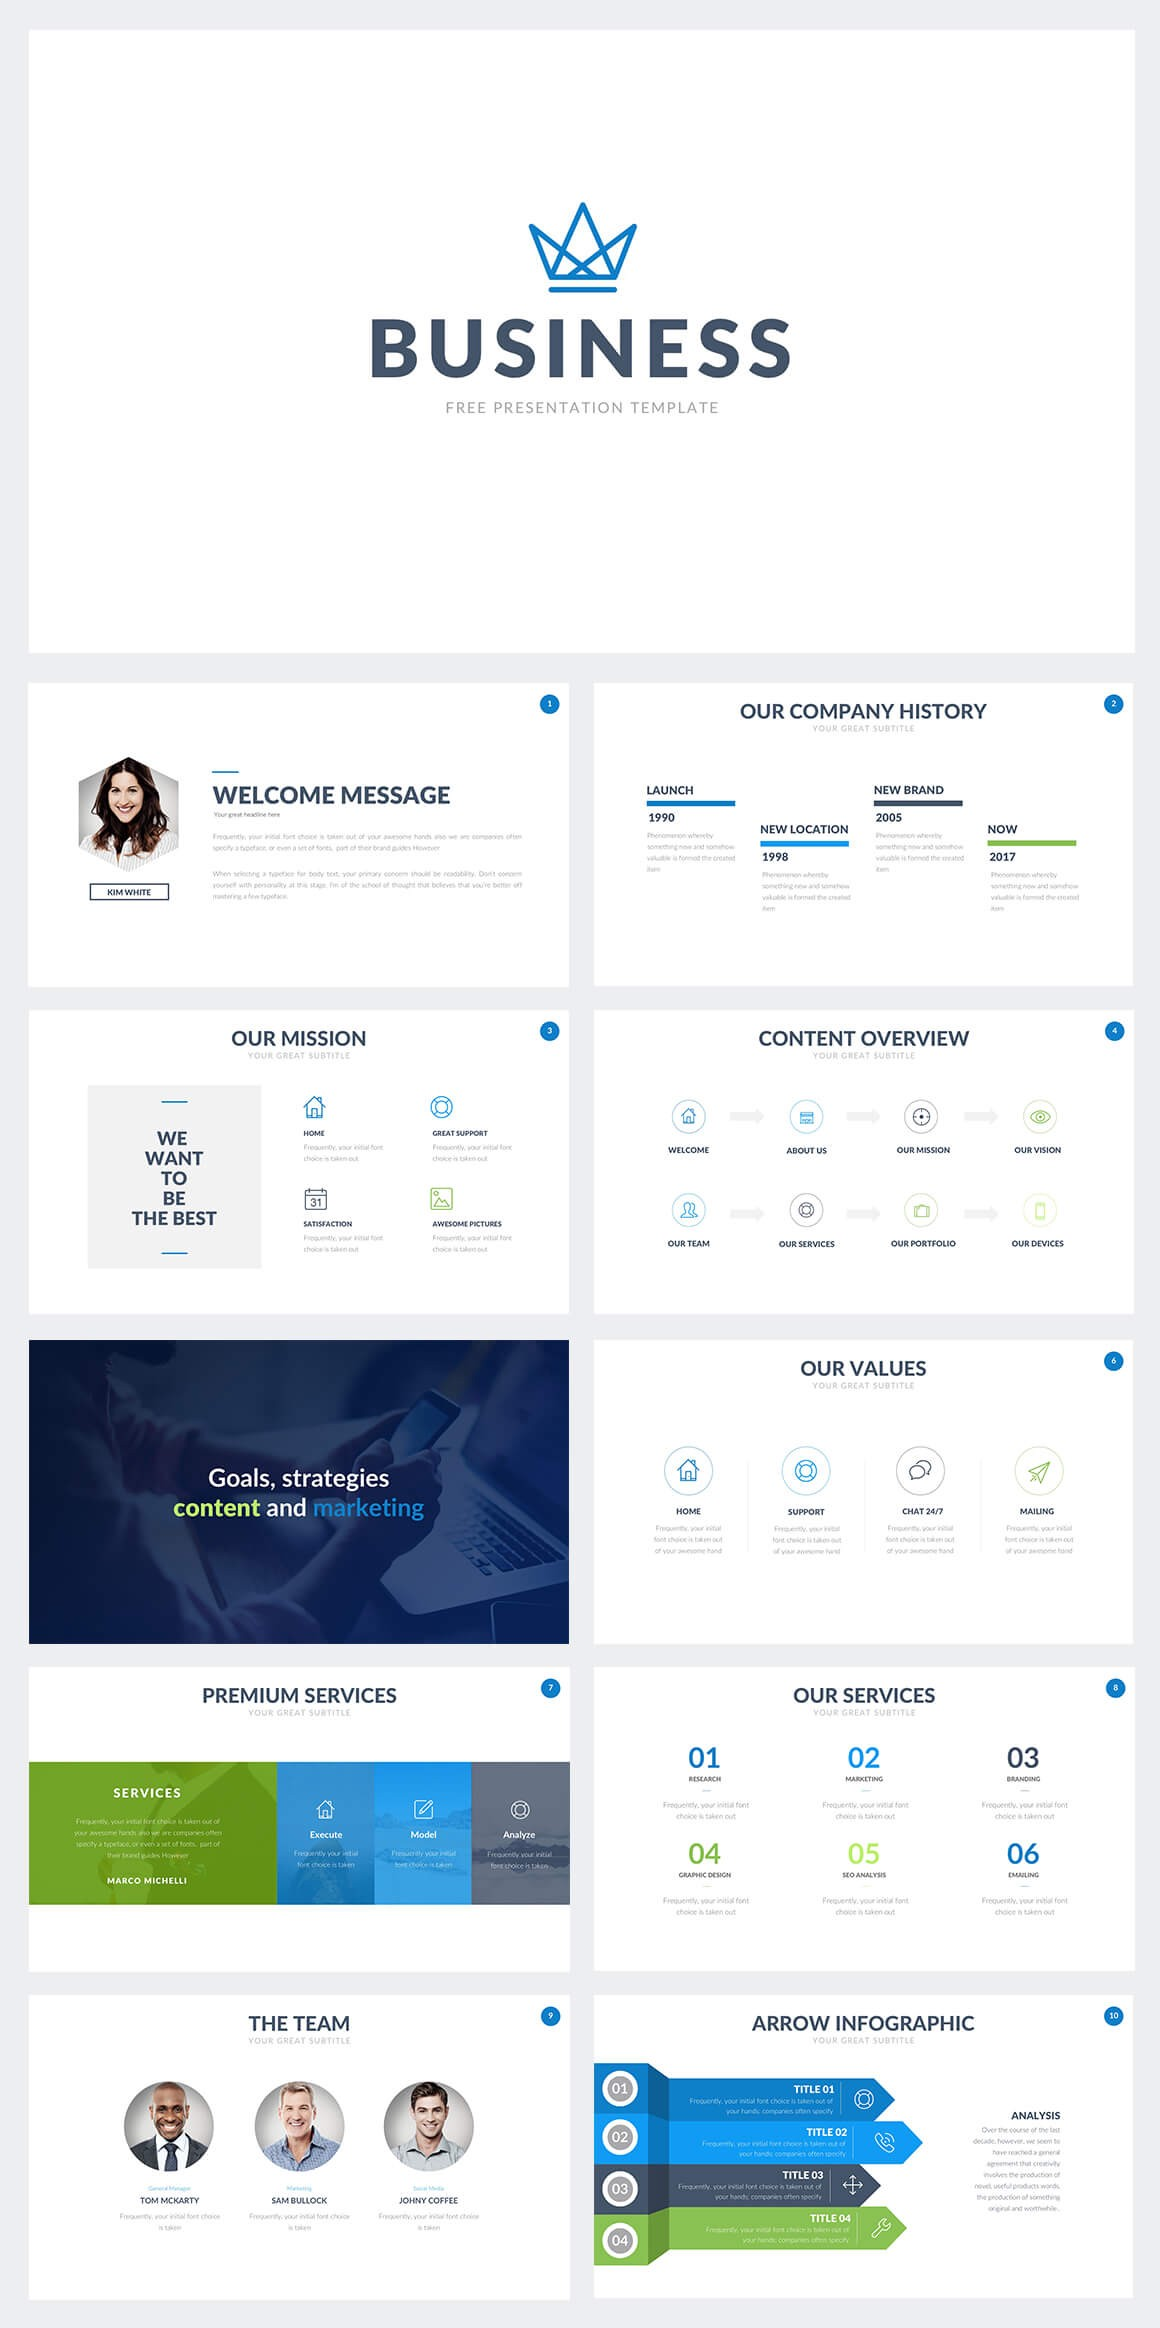 40 free cool powerpoint templates for presentations this business ppt template is great to show your companies values missions history and services take advantage of this free perfect business ppt wajeb Gallery